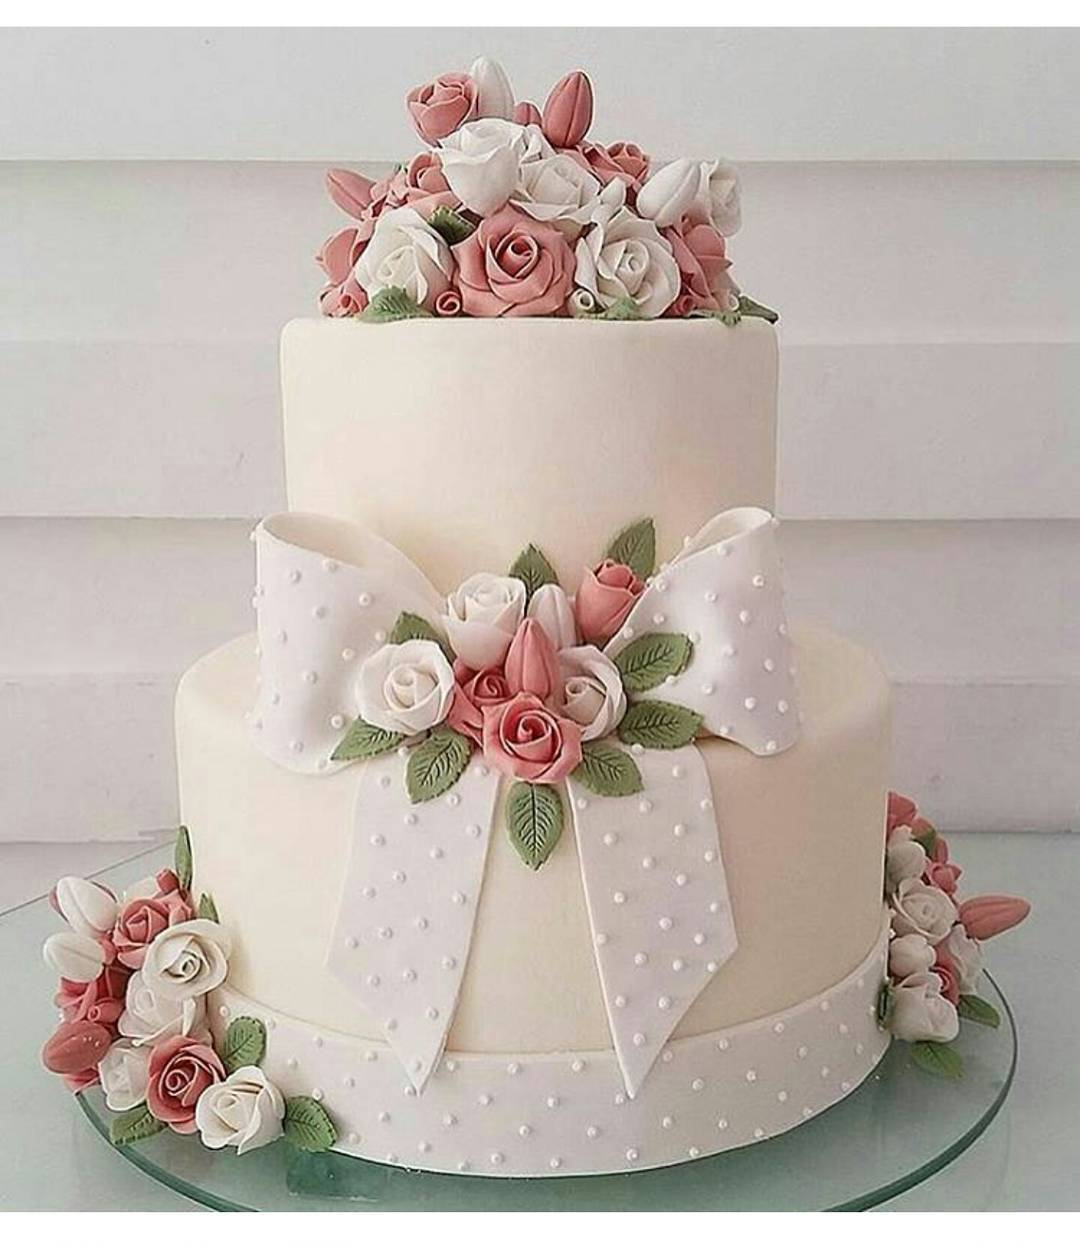 New Wedding Ideas 2018: 35 Delicious New Year Cake Ideas For A Sumptuous New Year 2018